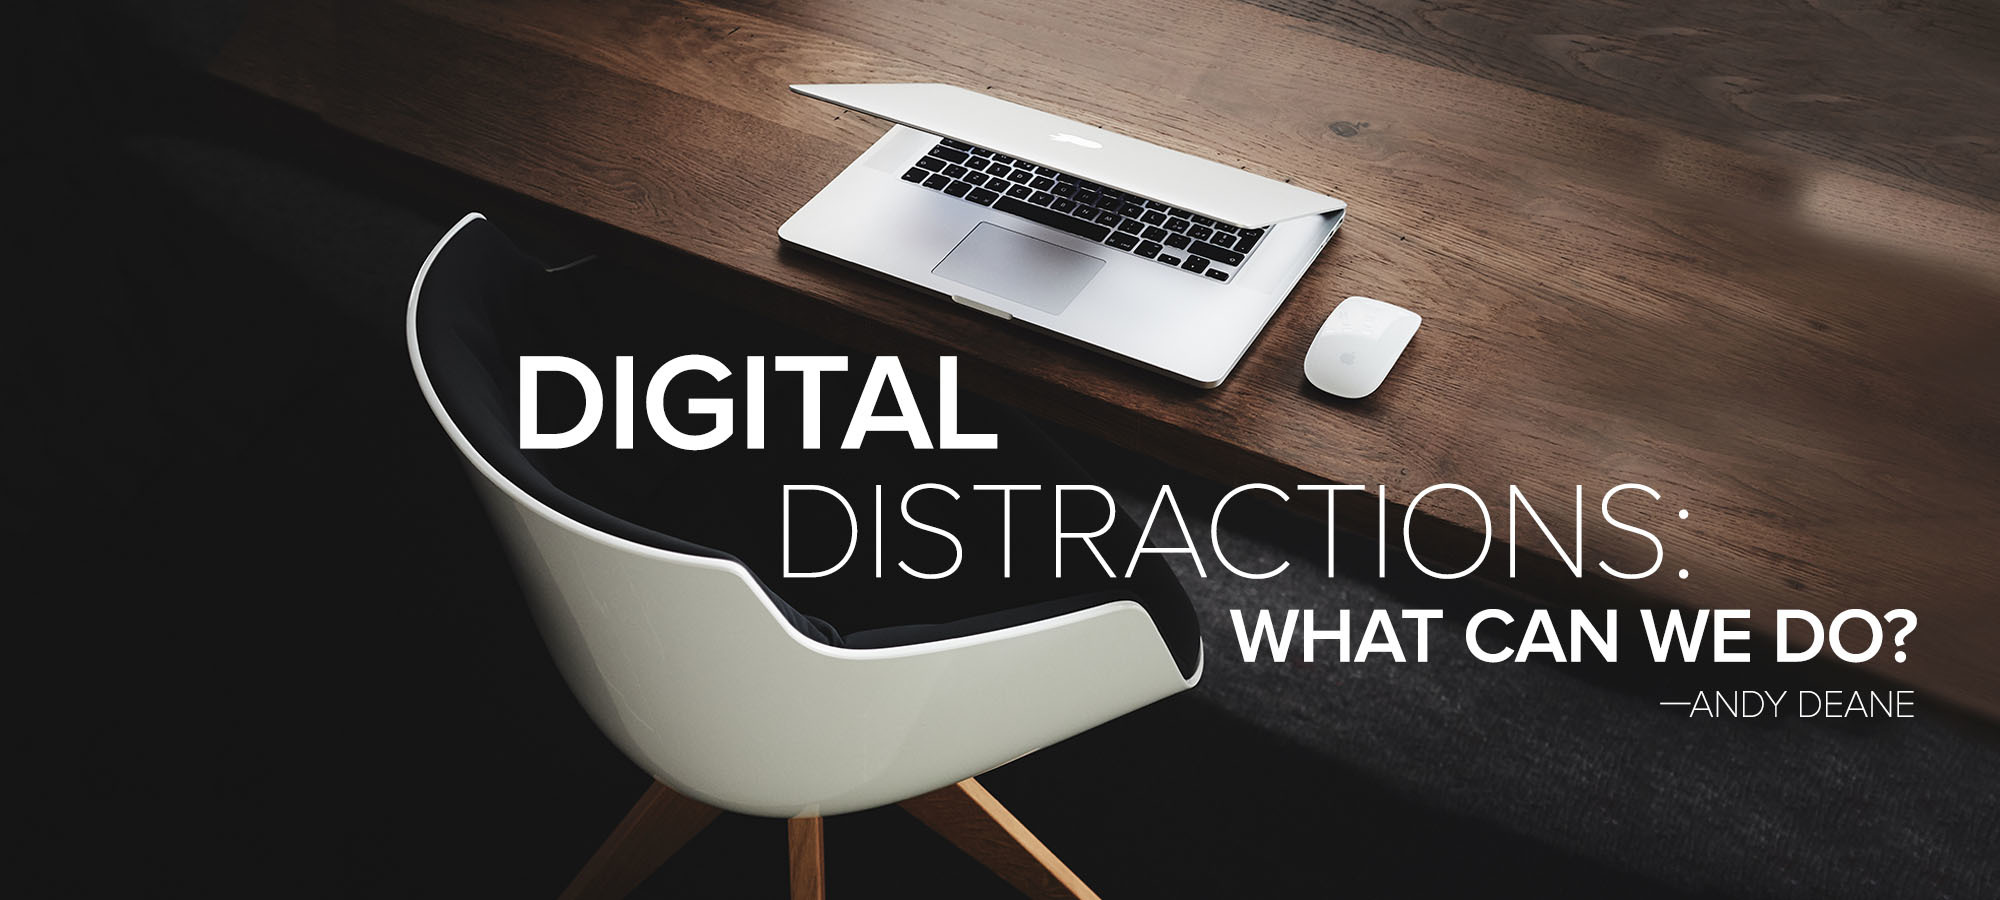 Digital Distractions: What Can We Do?